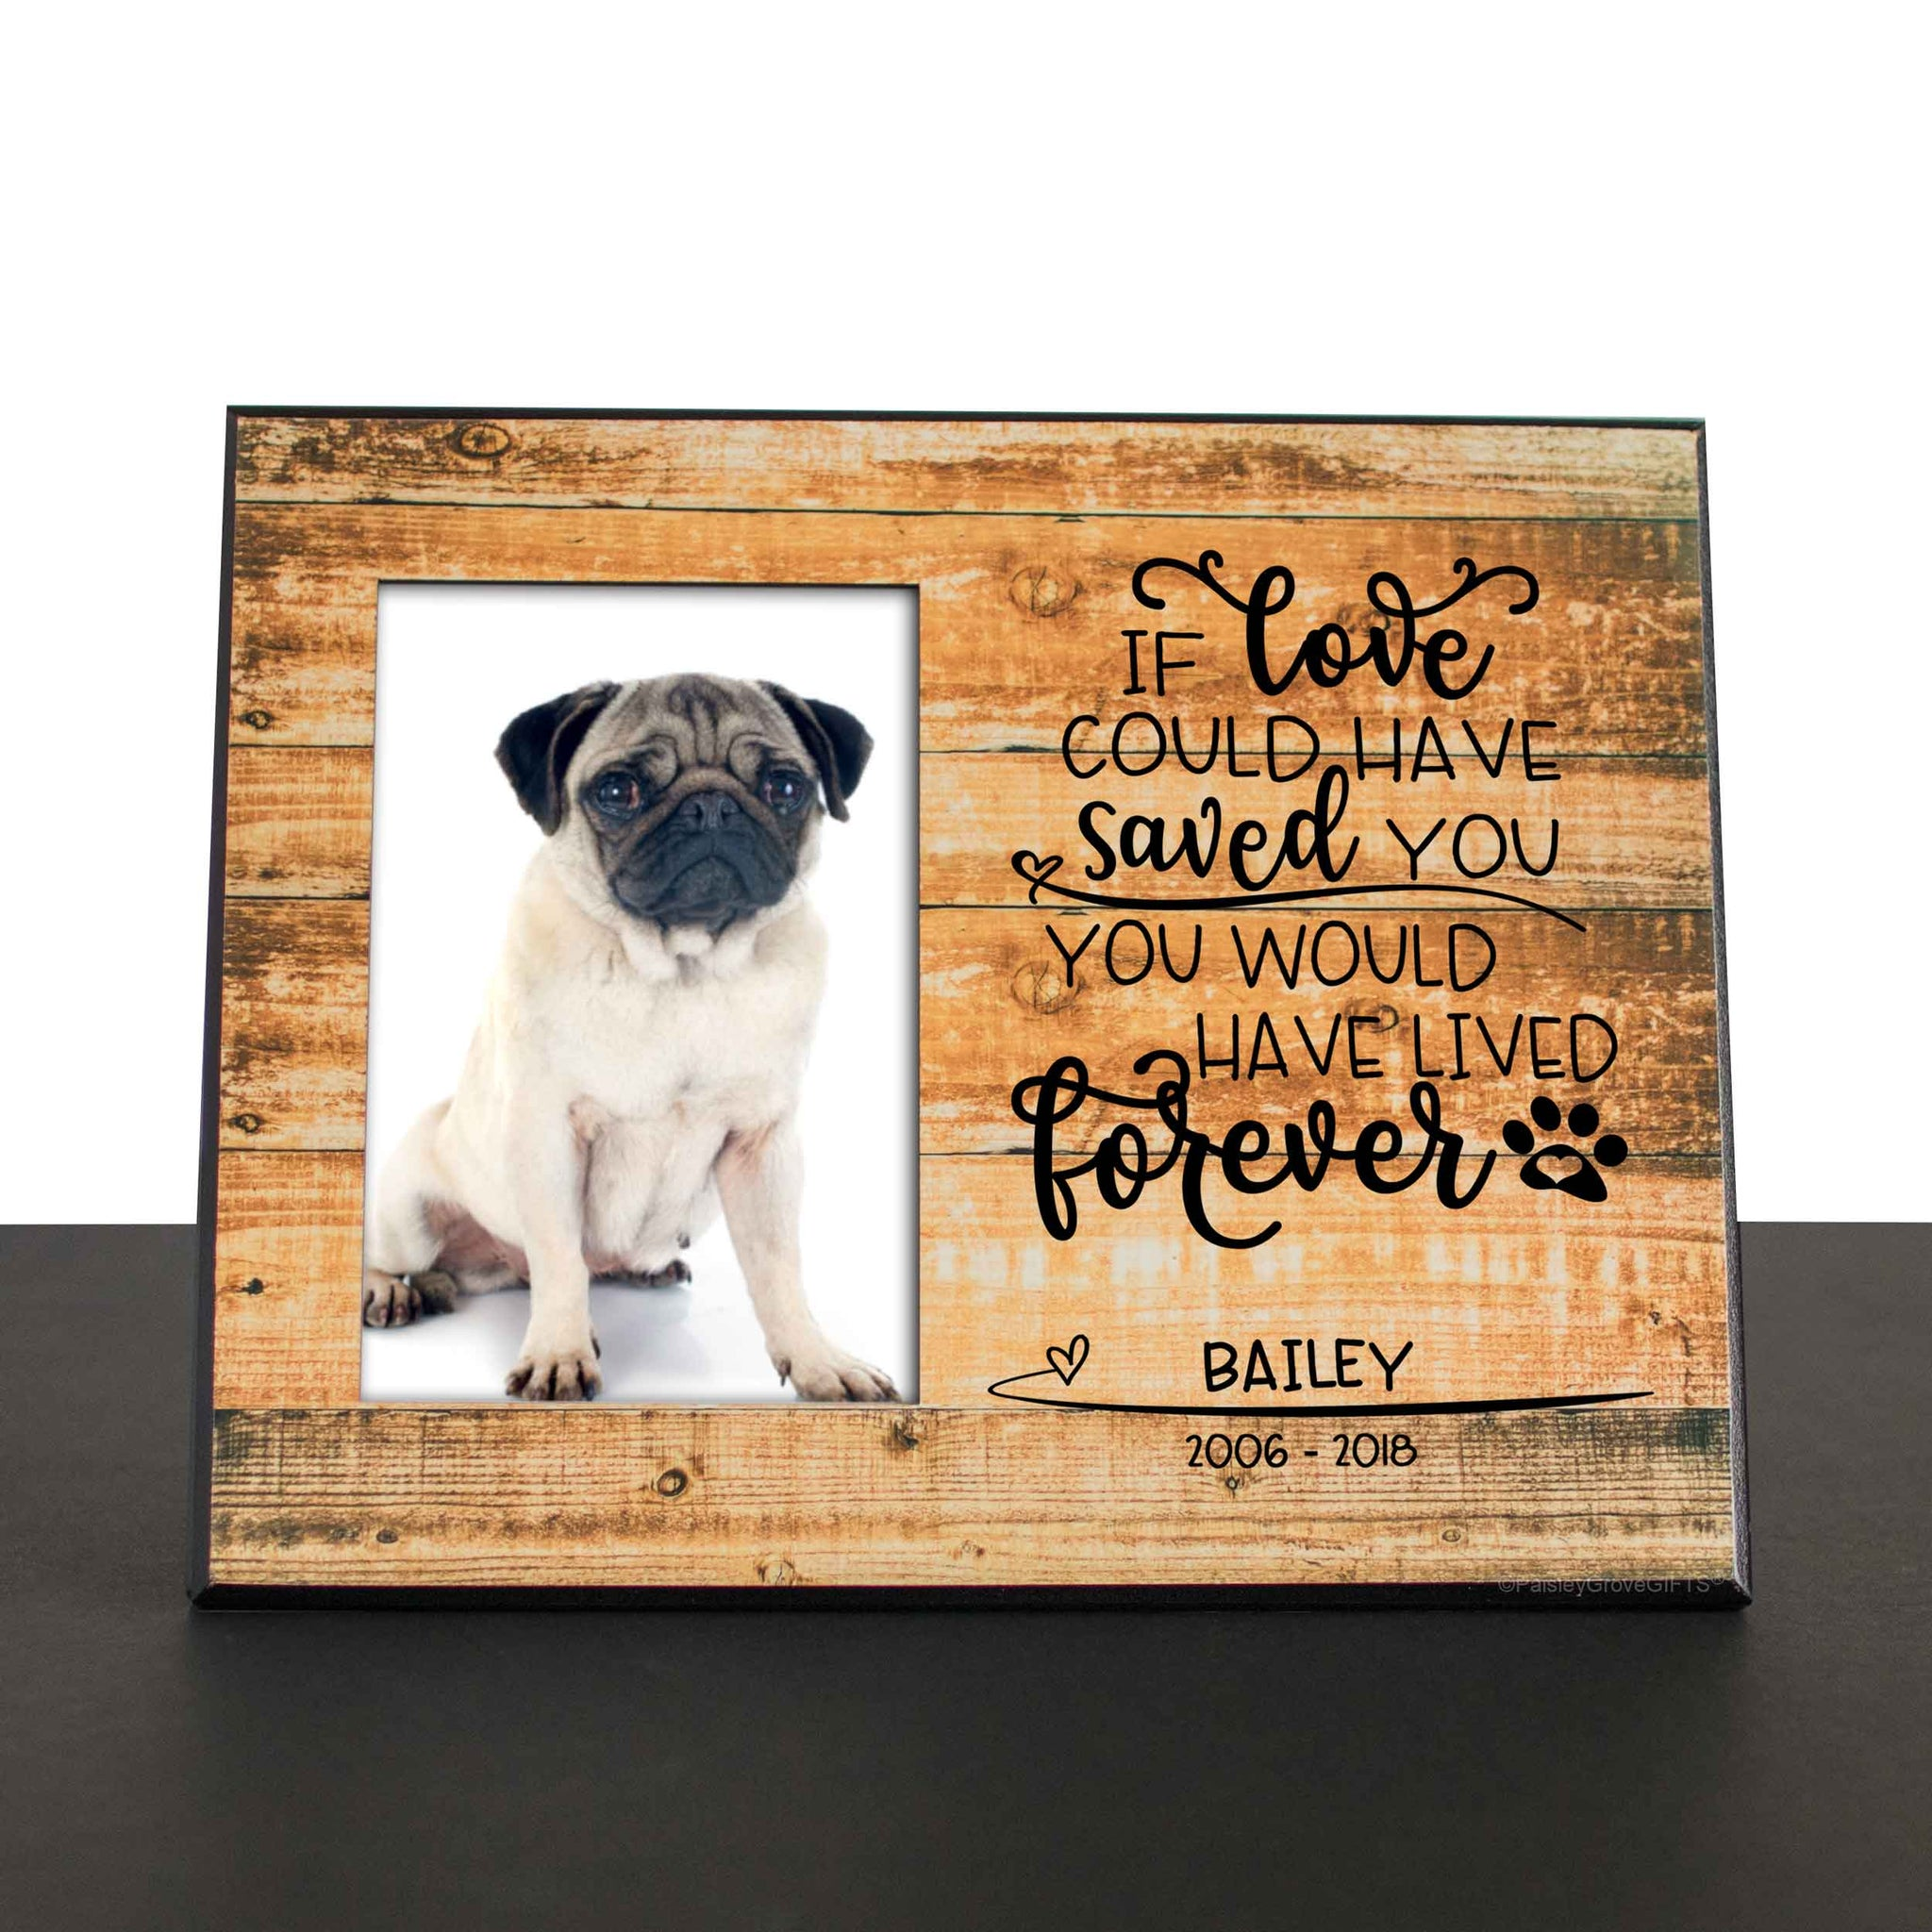 CopyrightPaisleyGroveGIFTS S280a1 Pug Death or Dog Loss Sympathy Gift for Pet Death Remembrance Frame